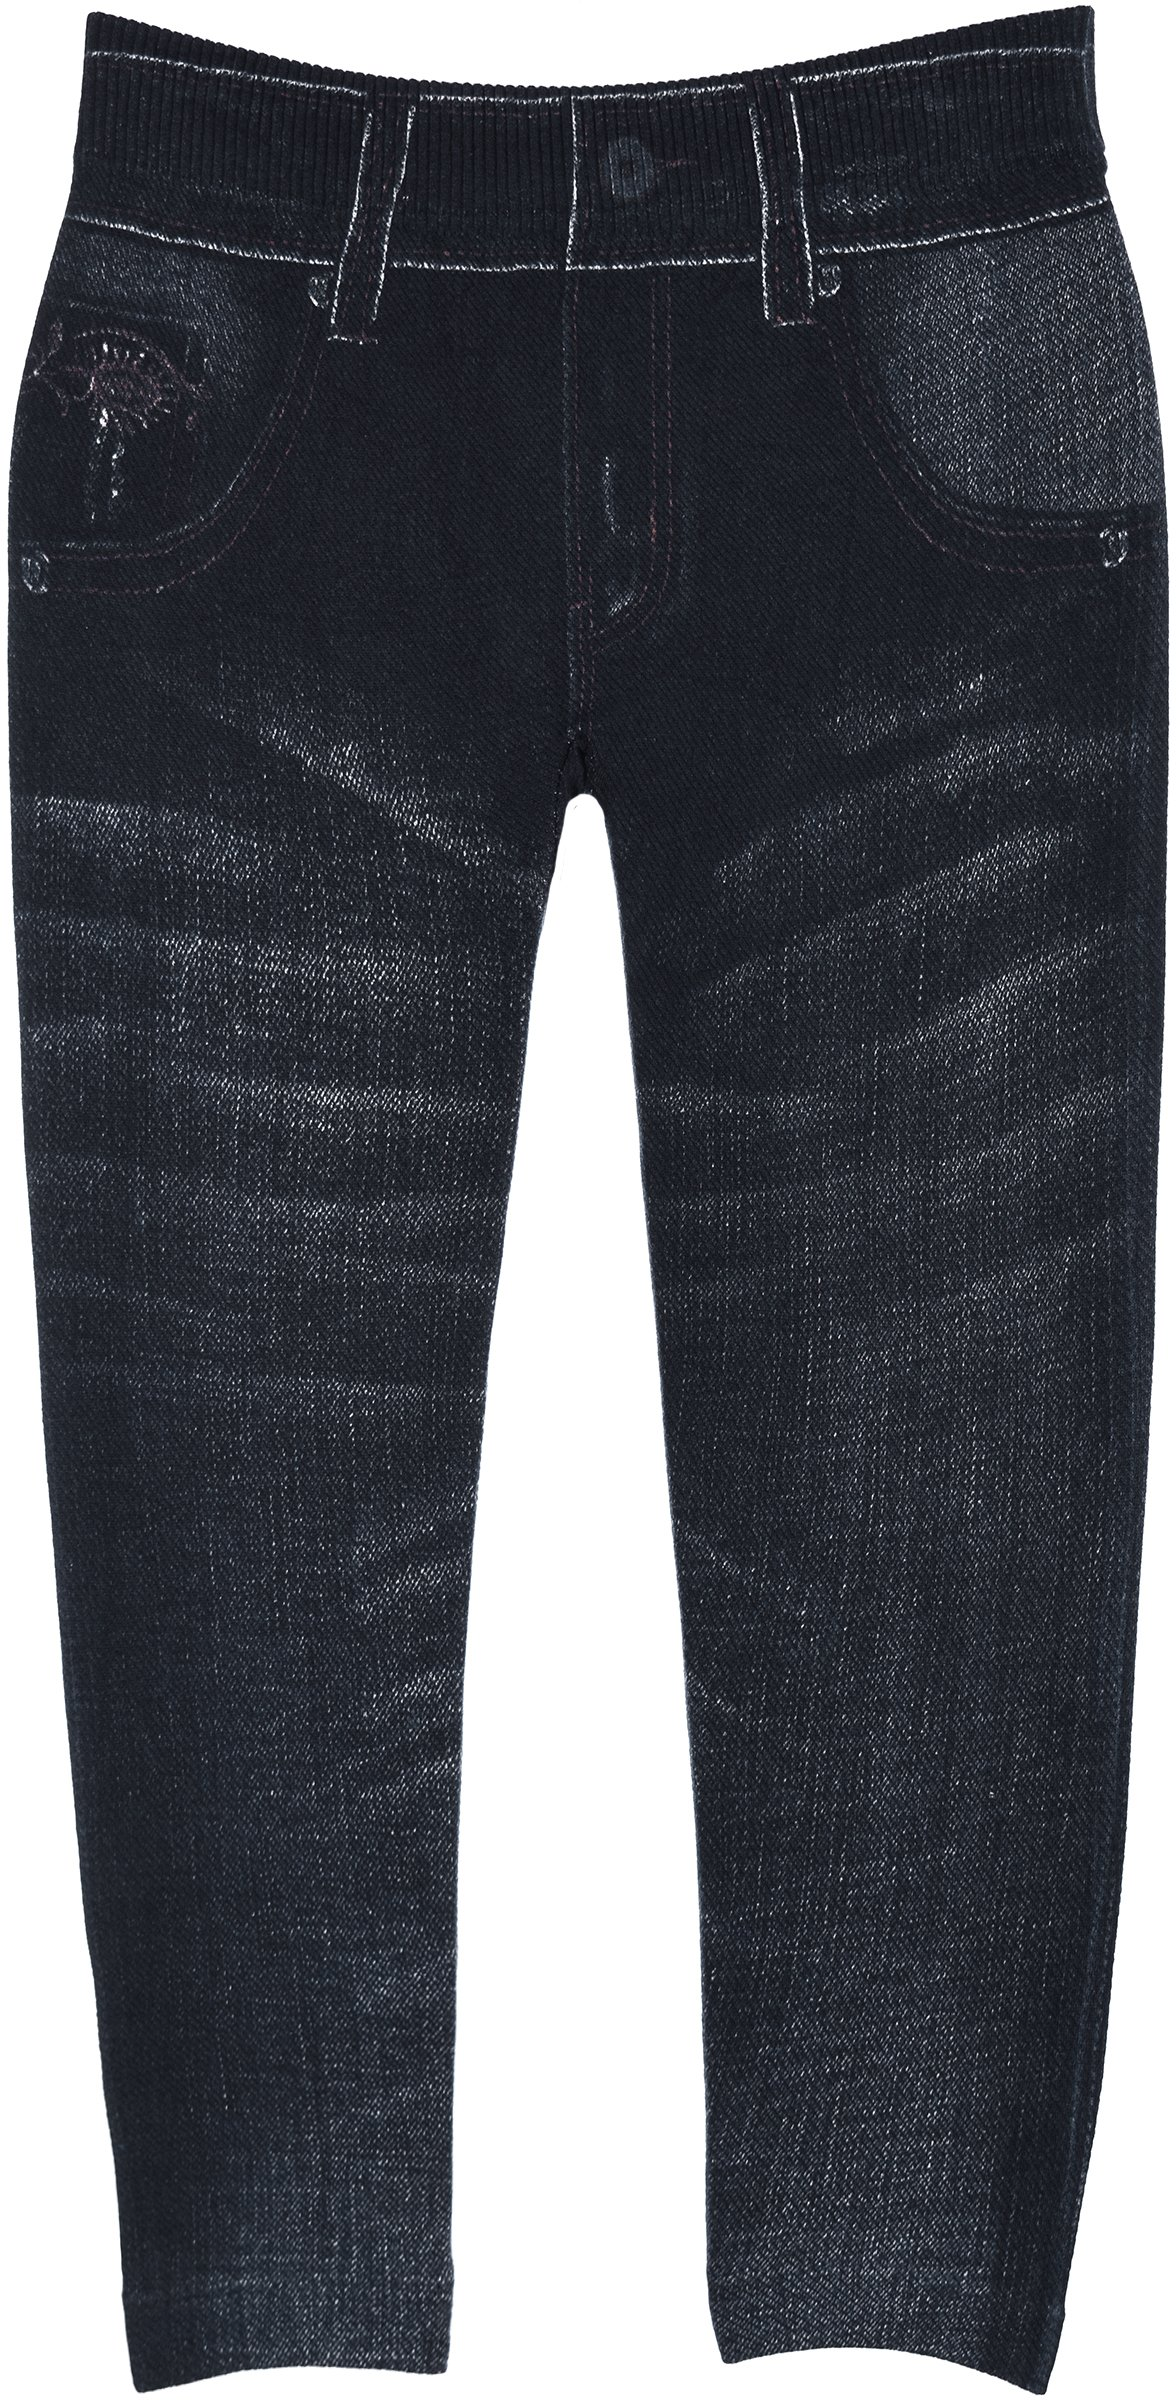 Crush Toddlers Jeggings in 3 Fun Denim Jean Look Patterns in Sizes 2T-4T (2T-4T, 22522 Dark Blue)